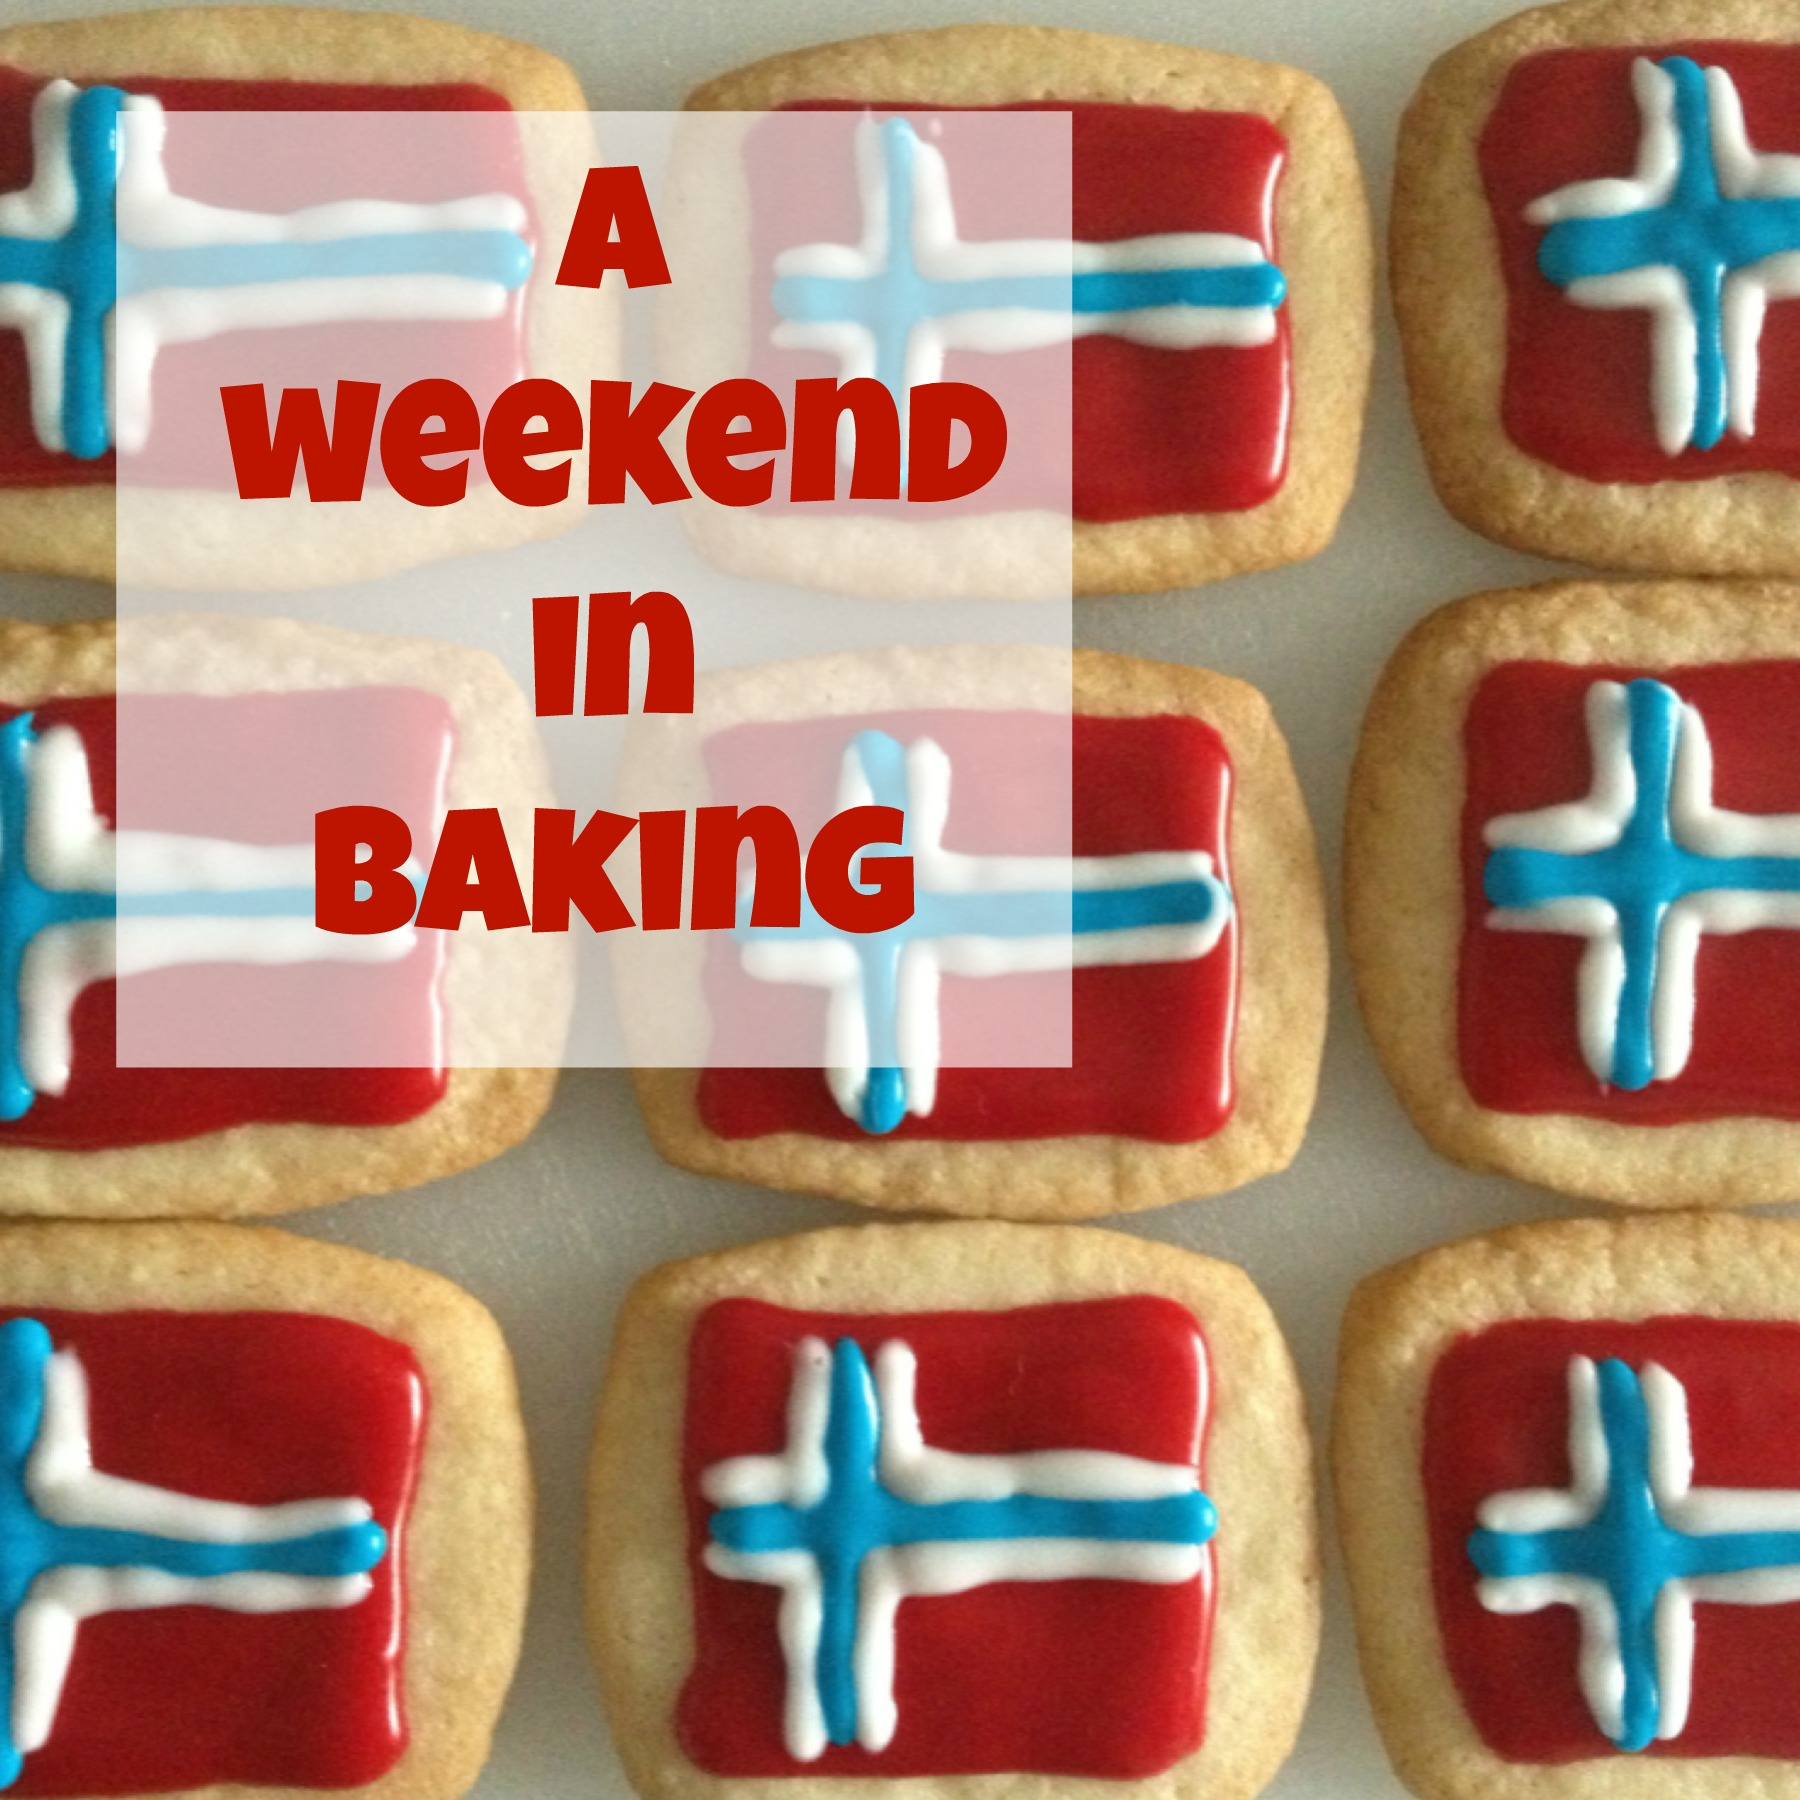 A weekend in baking